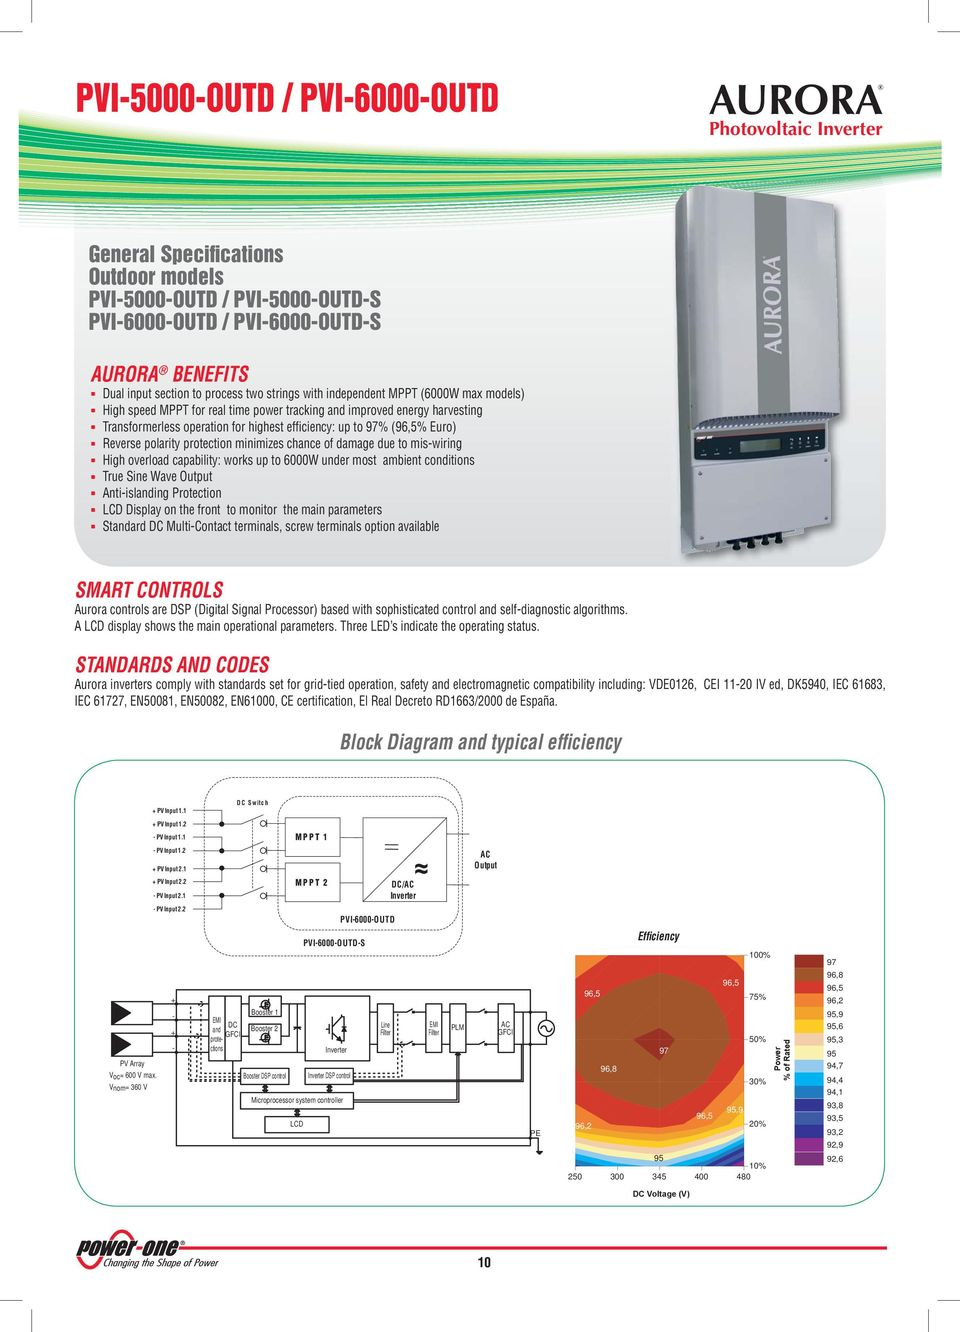 Aurora Photovoltaic Inverter Wind Power Solutions For Ups Circuit Diagram 965 Euro Reverse Polarity Protection Minimizes Chance Of Damage Due To